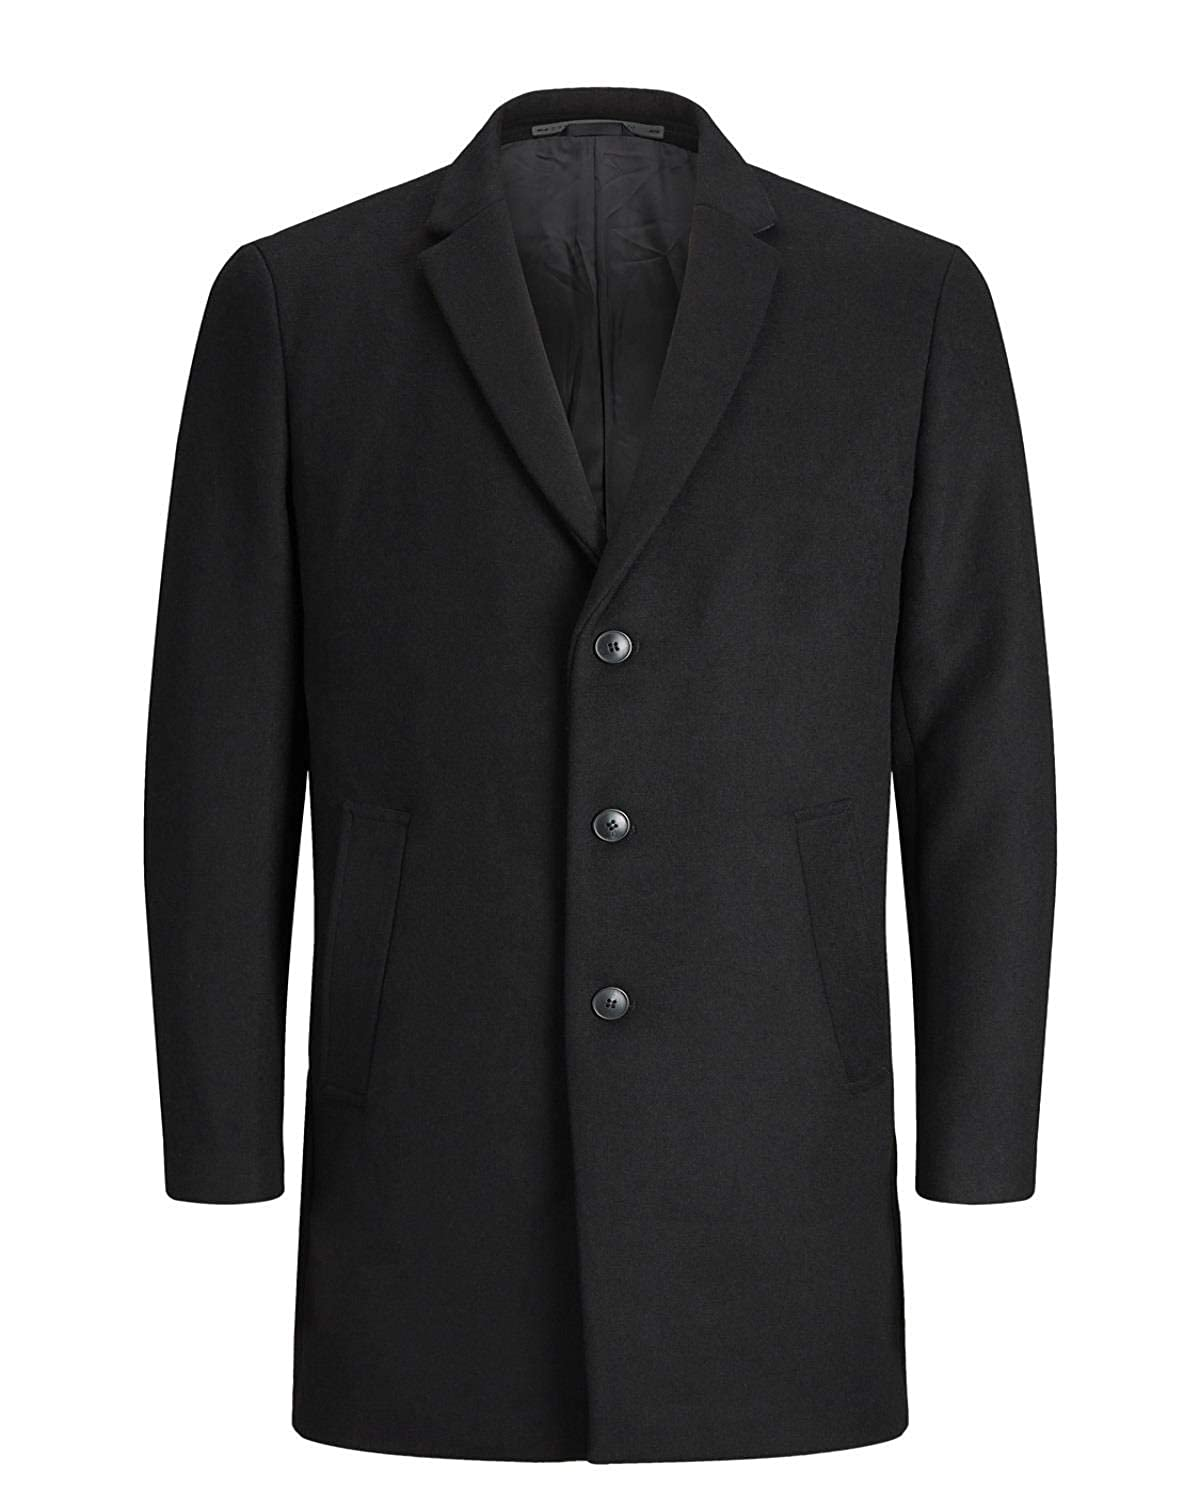 Jack & Jones Men's Jprmorten Wool Coat STS JACK & JONES PREMIUM 12136816